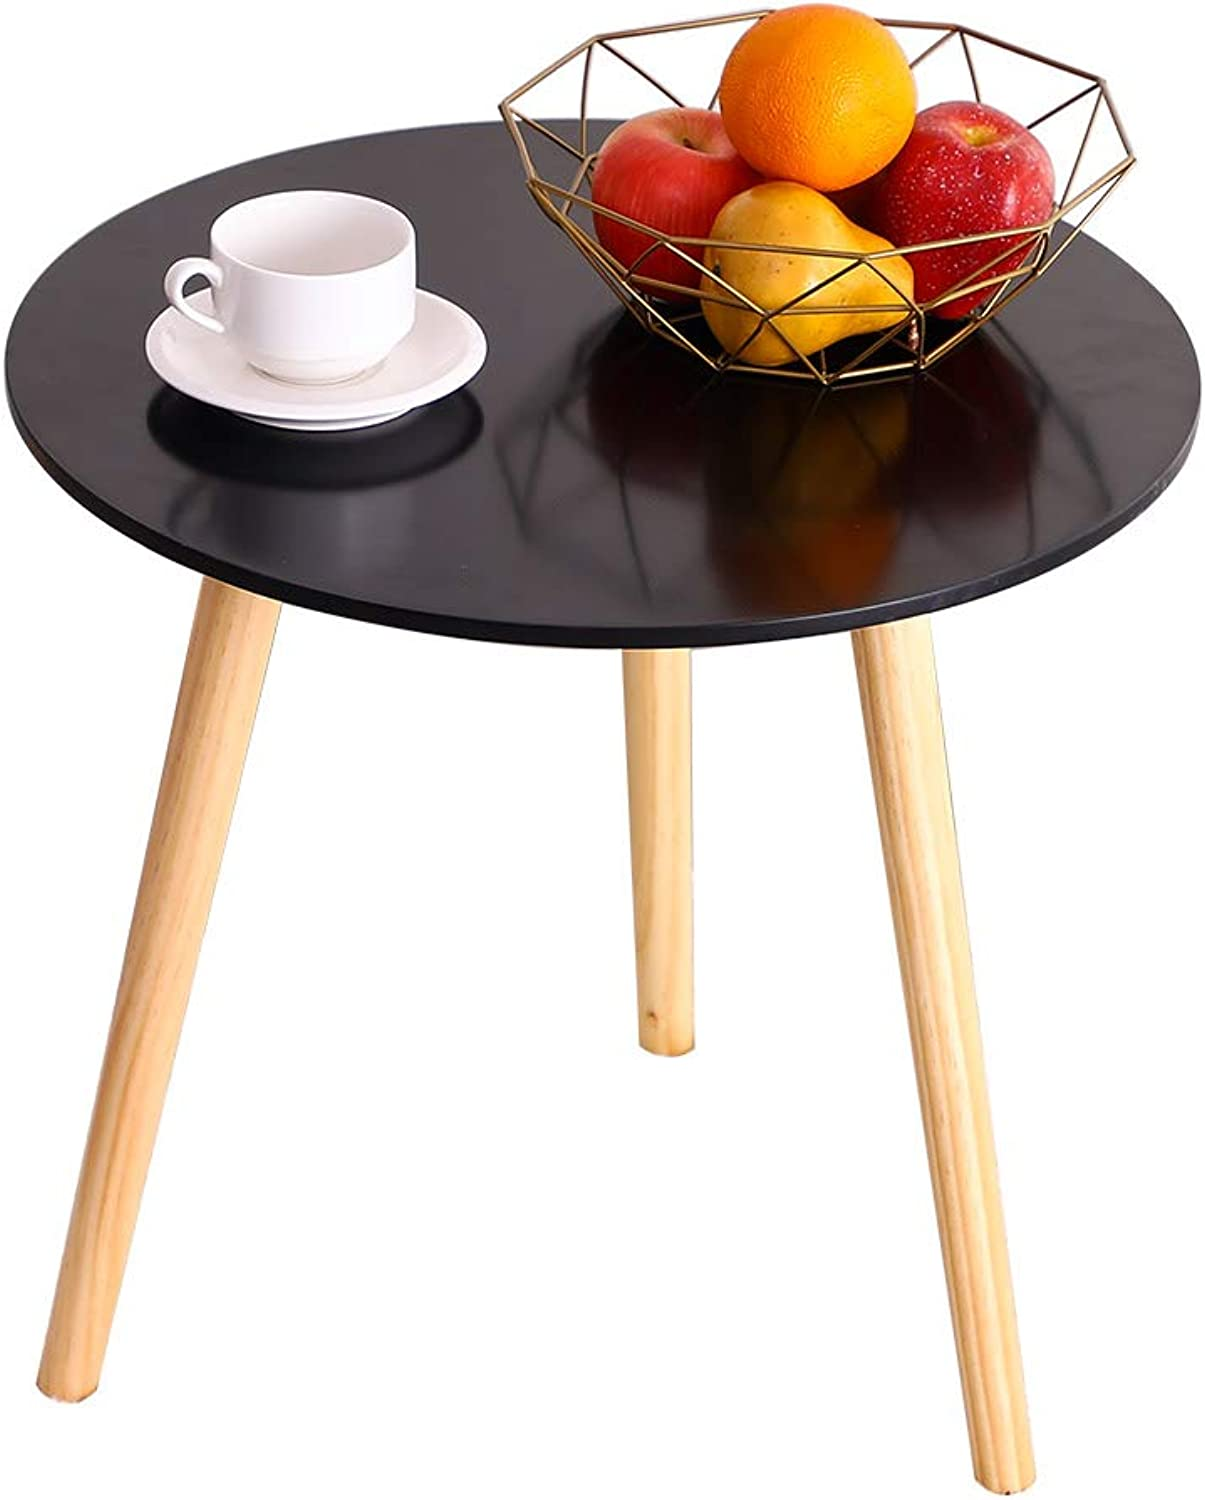 BAOYOUNI Round Coffee Table Kitchen Dining Table Office Conference Pedestal Desk Modern Leisure Decorative End Table with Wooden Legs and MDF Top - Black